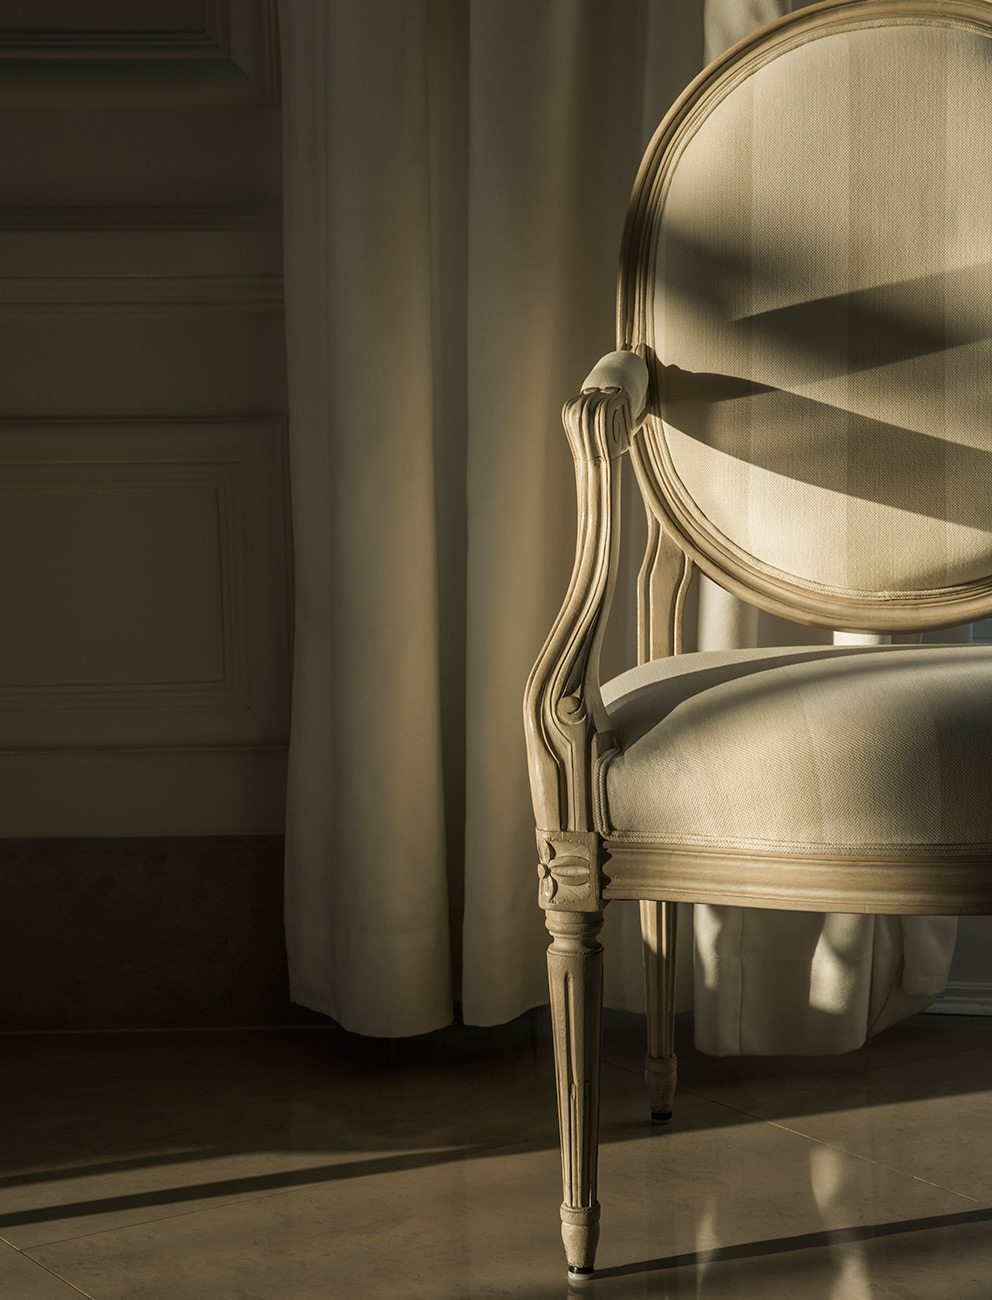 Photography tips and tricks: Shooting interiors at sunrise